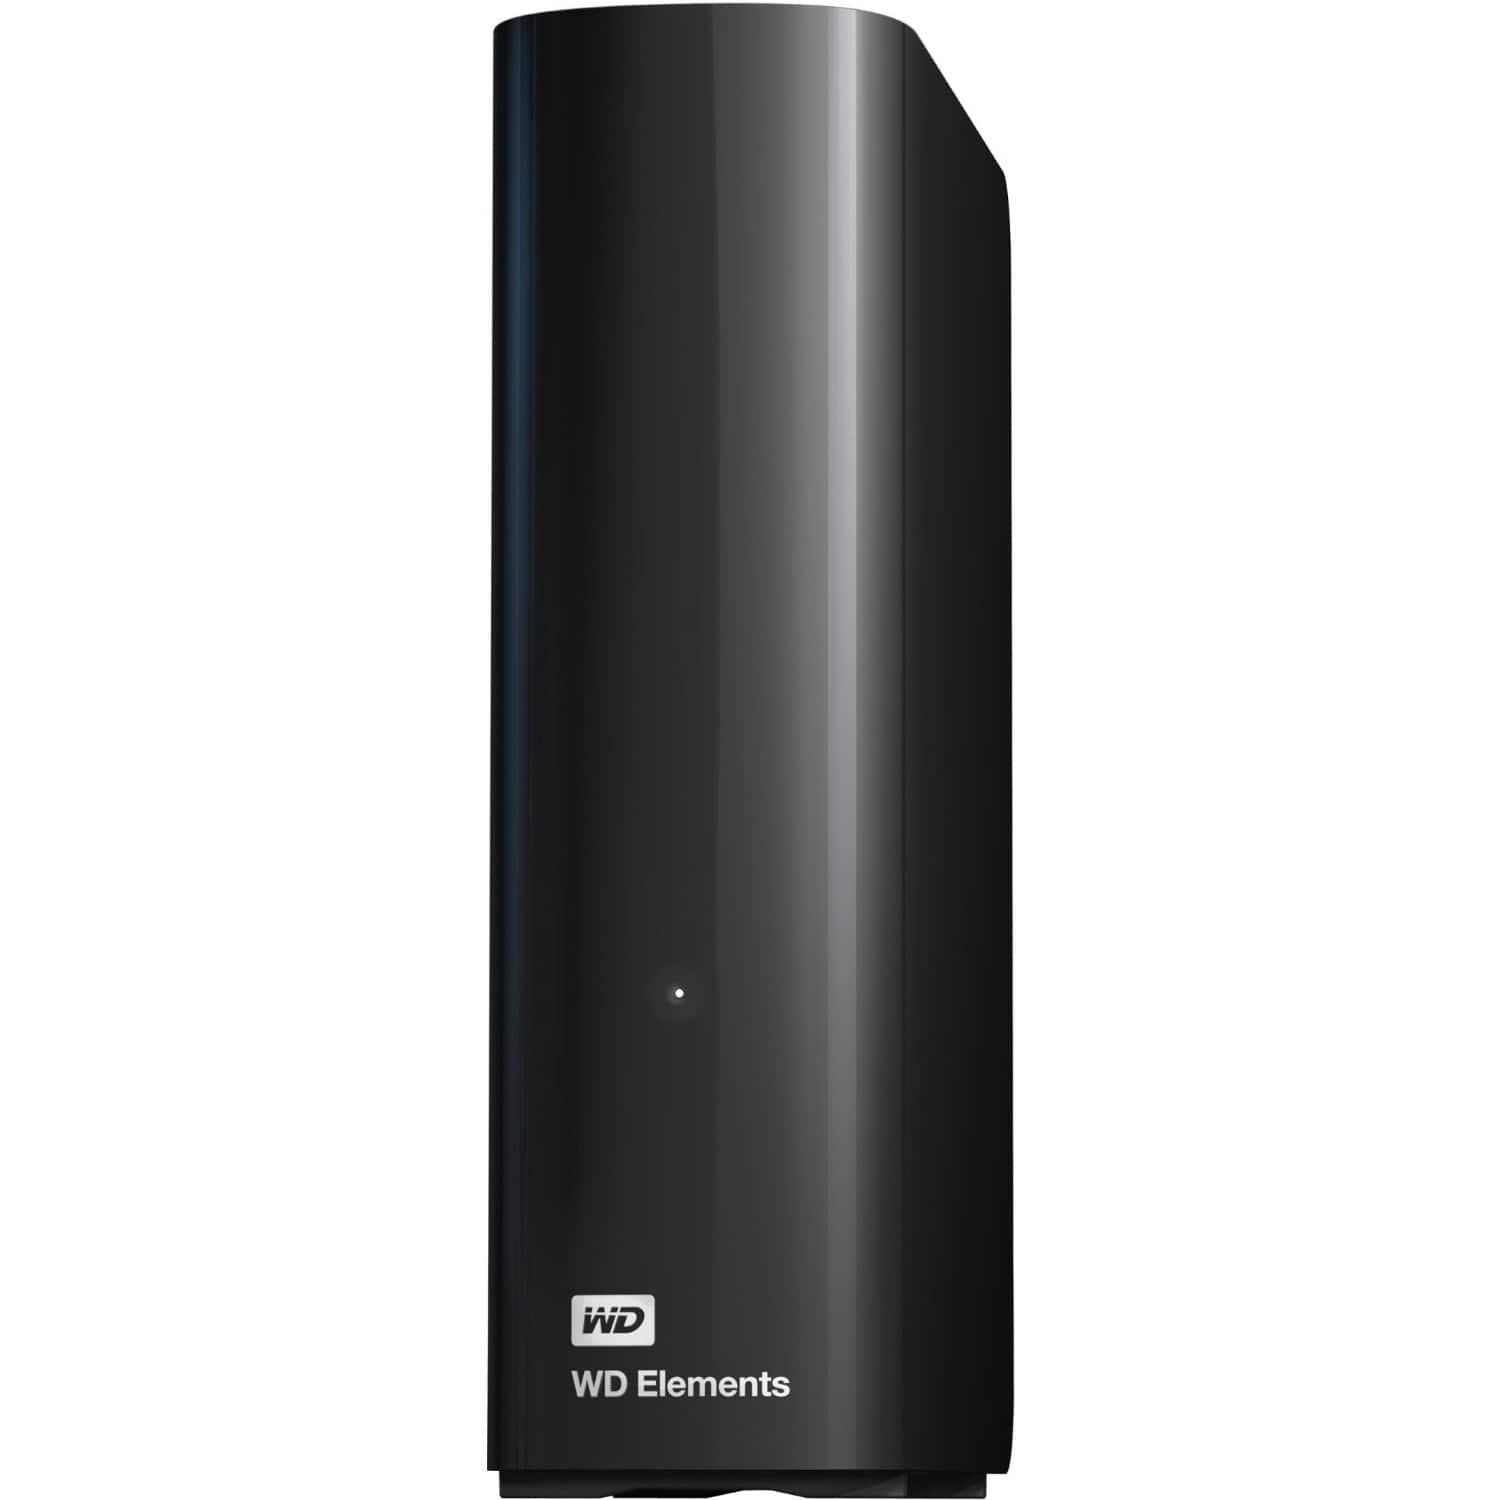 5TB Western Digital My Book USB 3.0 External Hard Drive for $109.99 at Best Buy